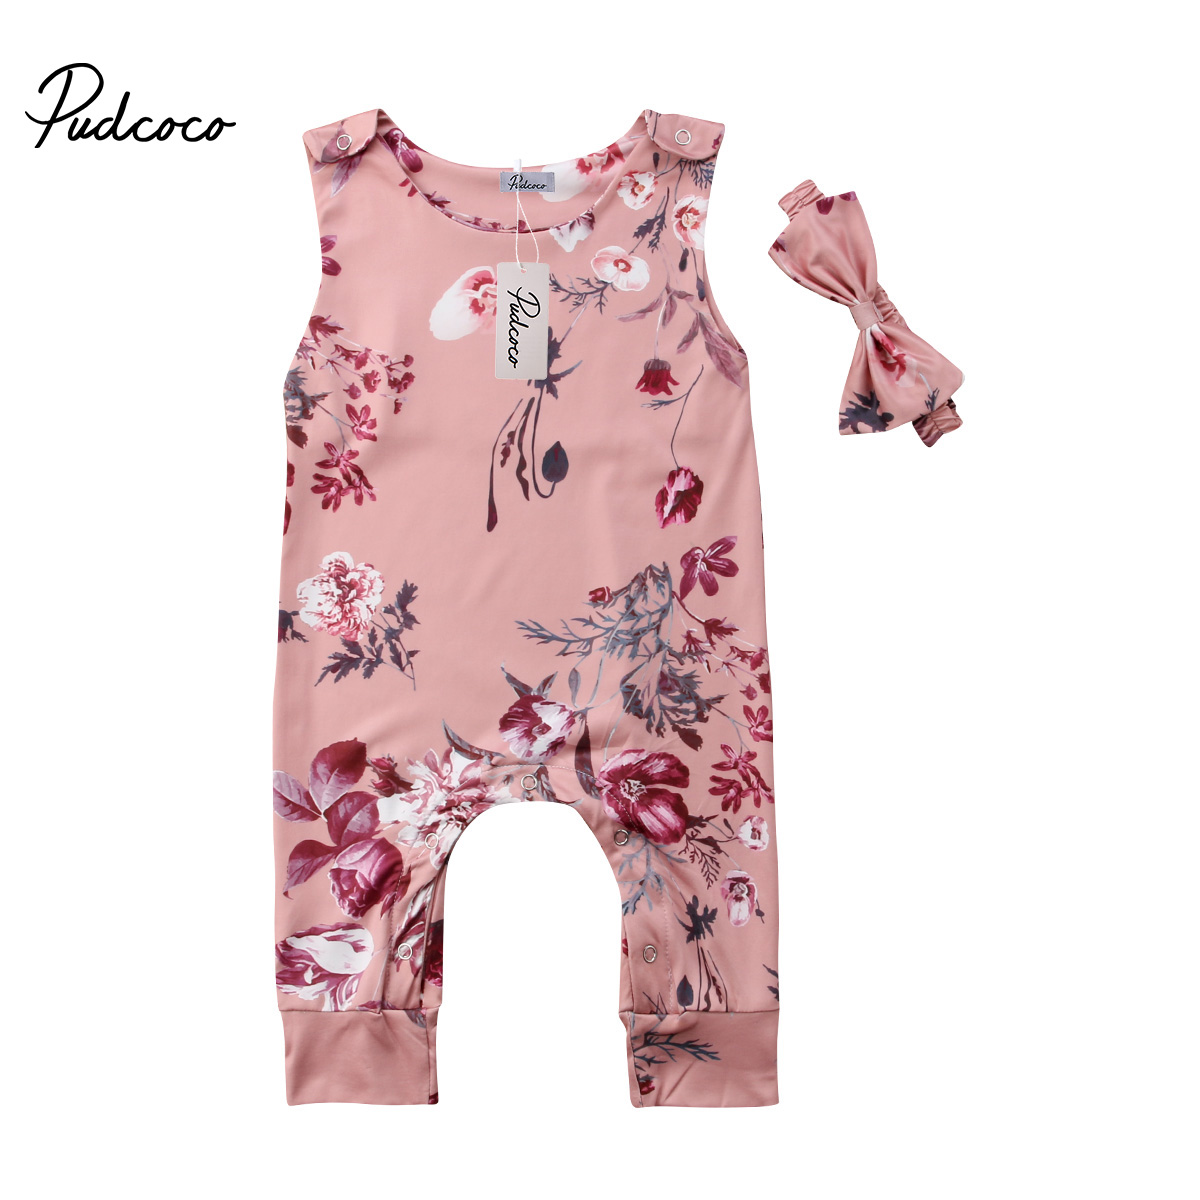 Baby Girl Sleeveless Romper Round Neck Button Shoulder Flowers Jumpsuit+ Bow Tie Headband 2PCS Outfits Sets